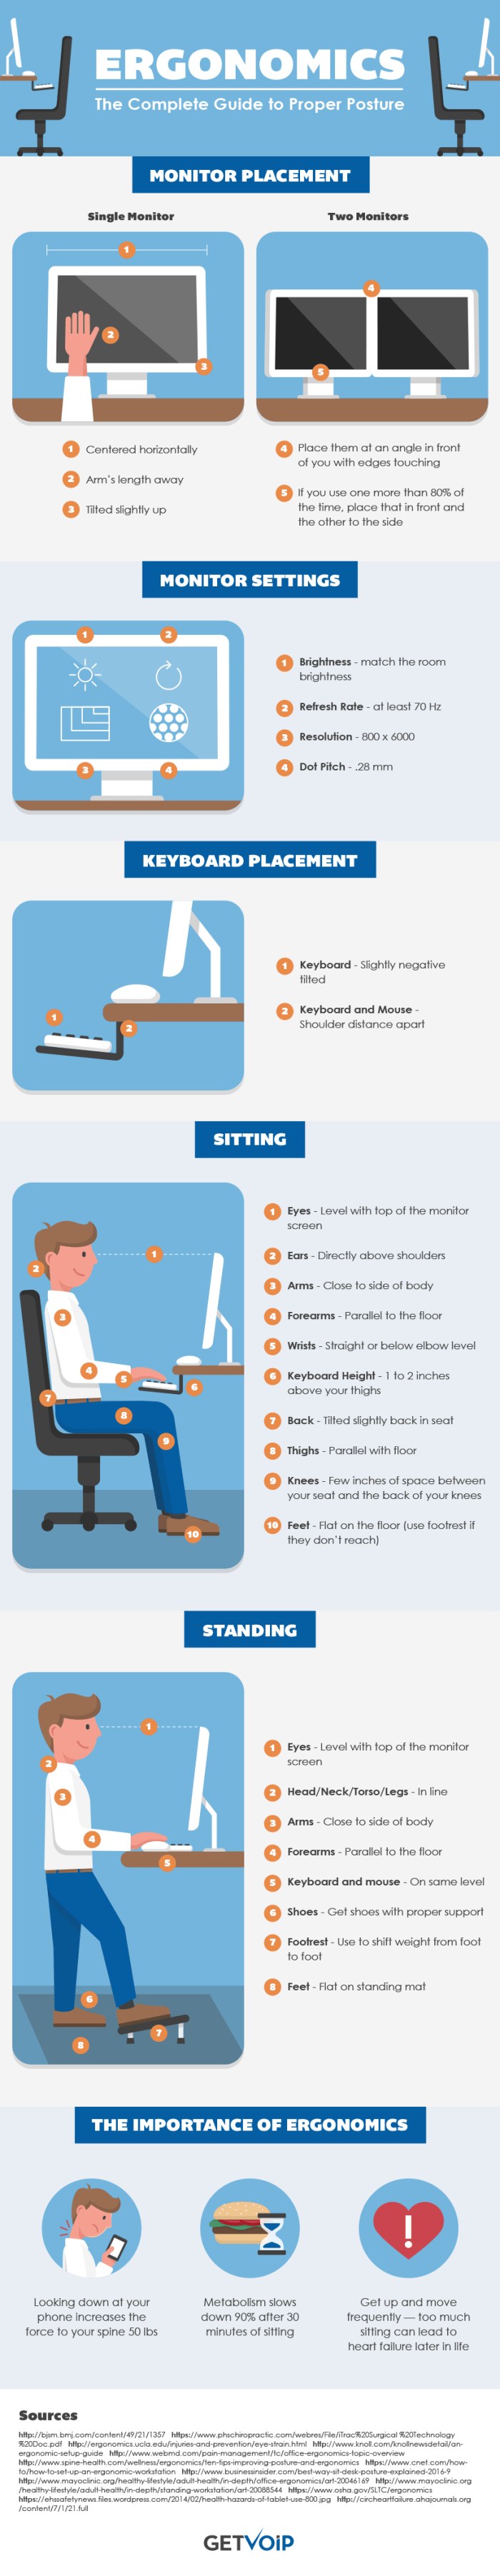 office-ergonomics-the-complete-guide-to-proper-posture